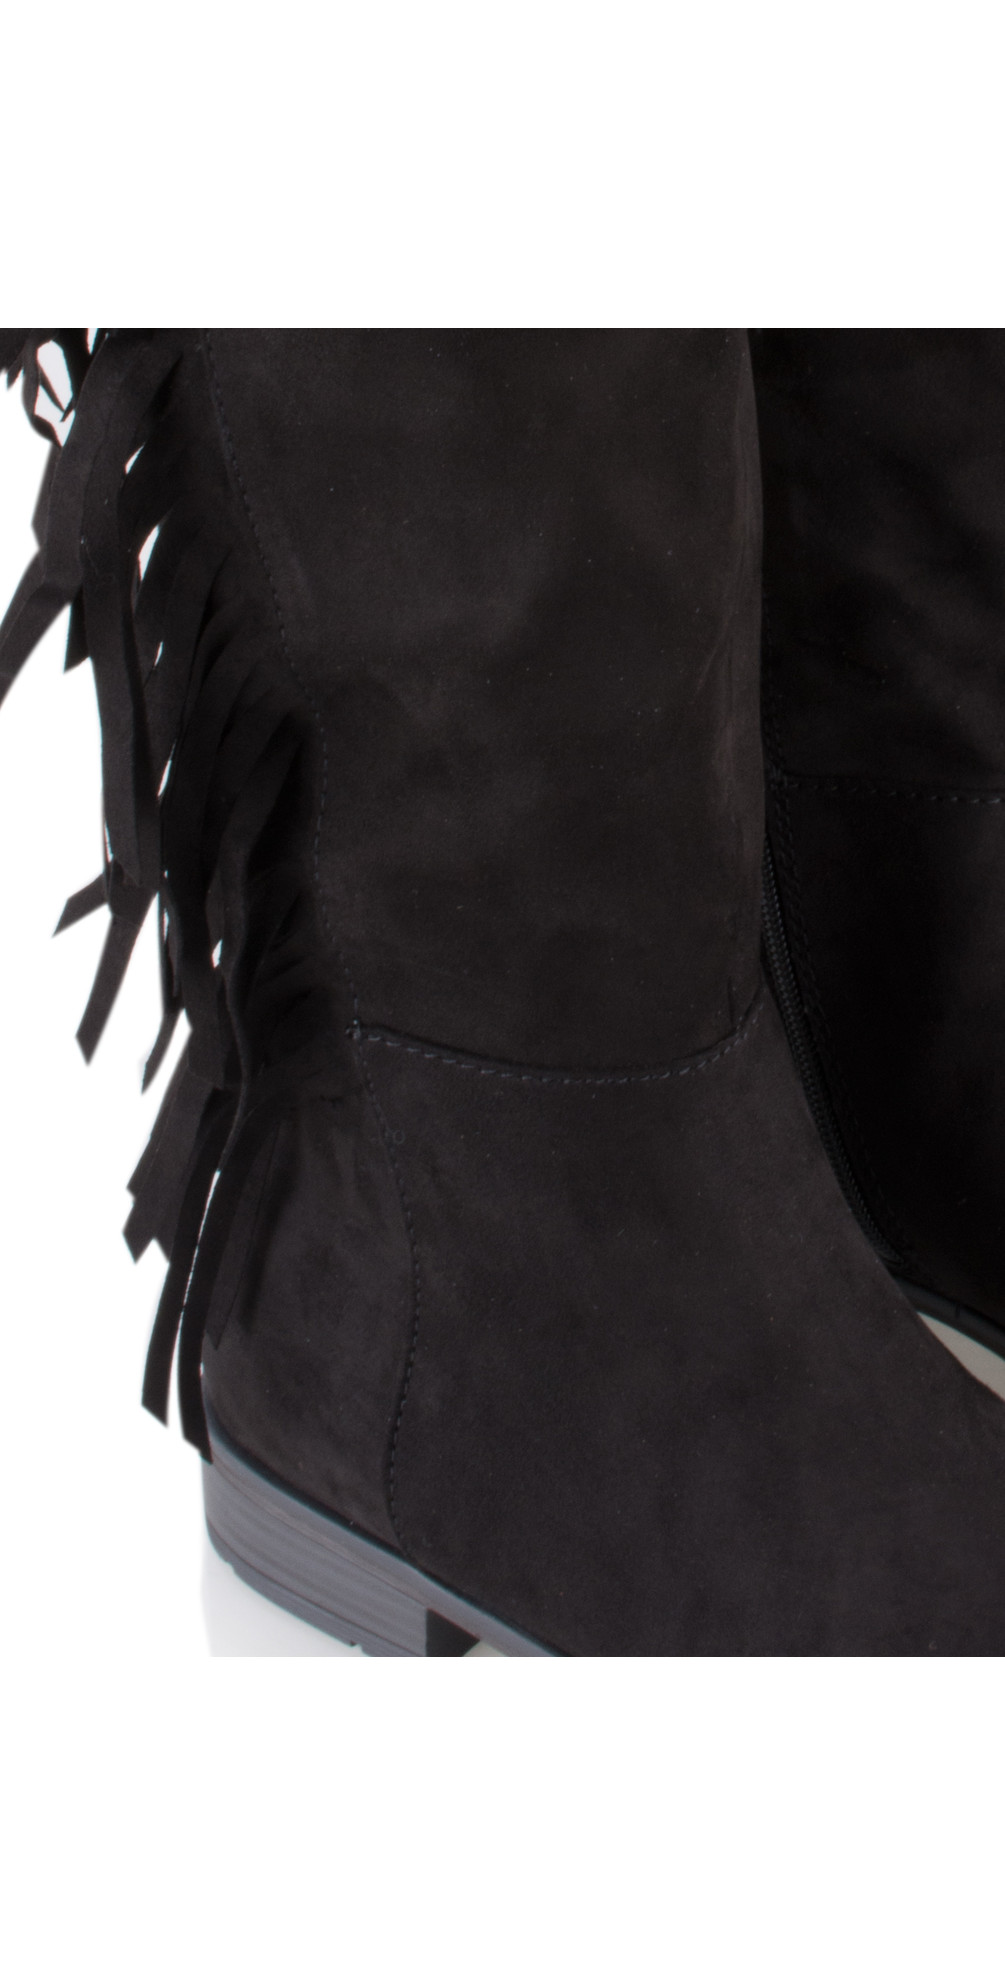 ded019f2096 Marco Tozzi Imit Suede Tassel Long Boot in Black